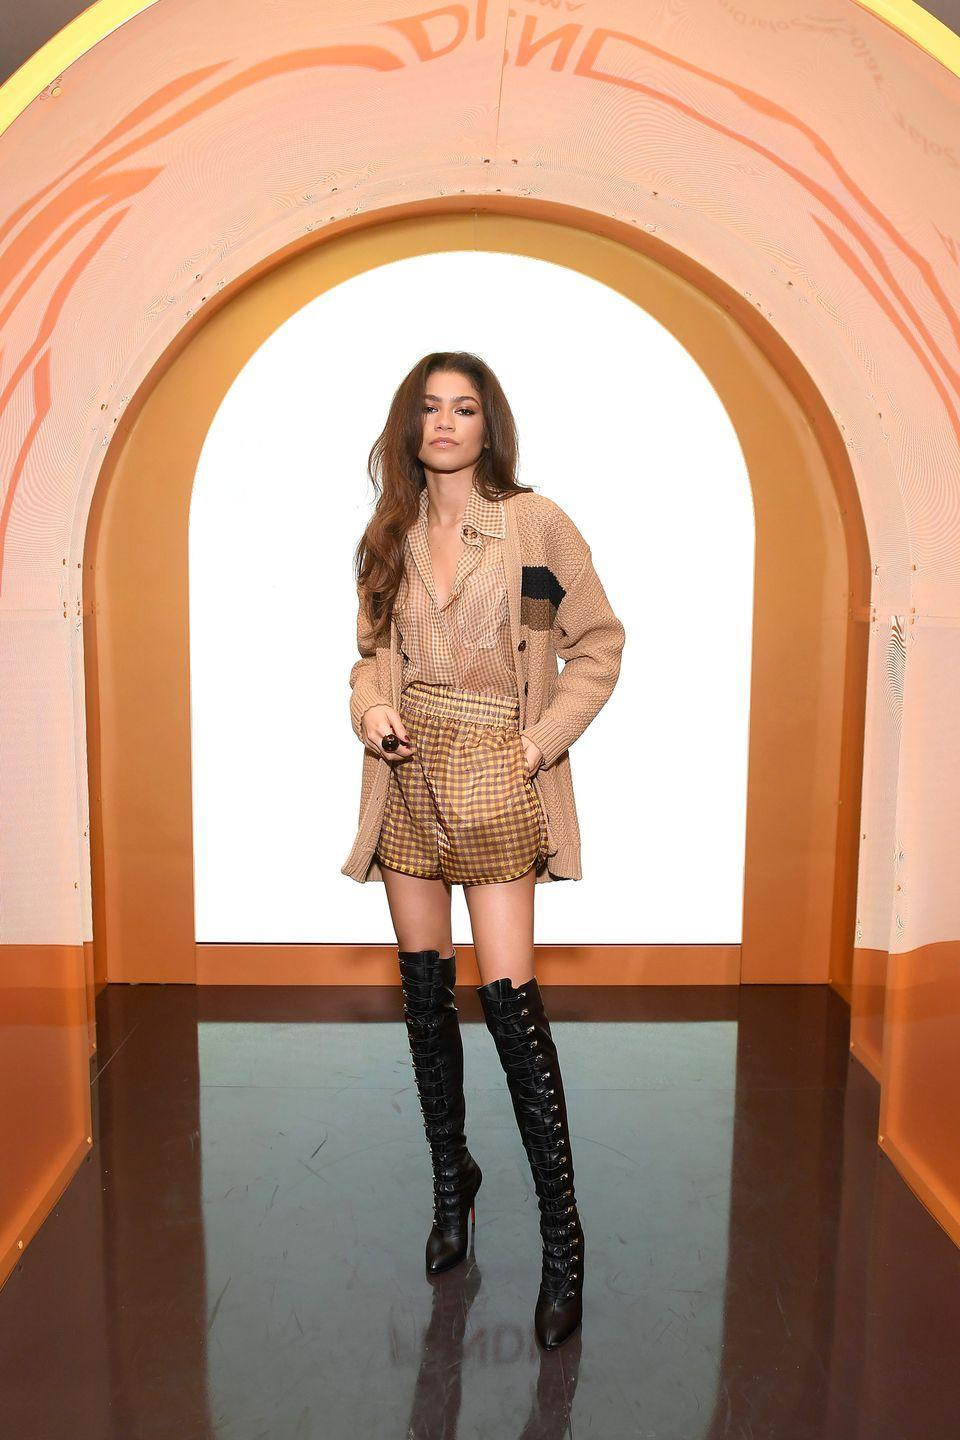 <p>For Fendi's Solar Dream Launch, Z showed up and conquered in a checkered set from the spring 2020 collection. She added some killer thigh-high Louboutin boots to complete the look.</p>